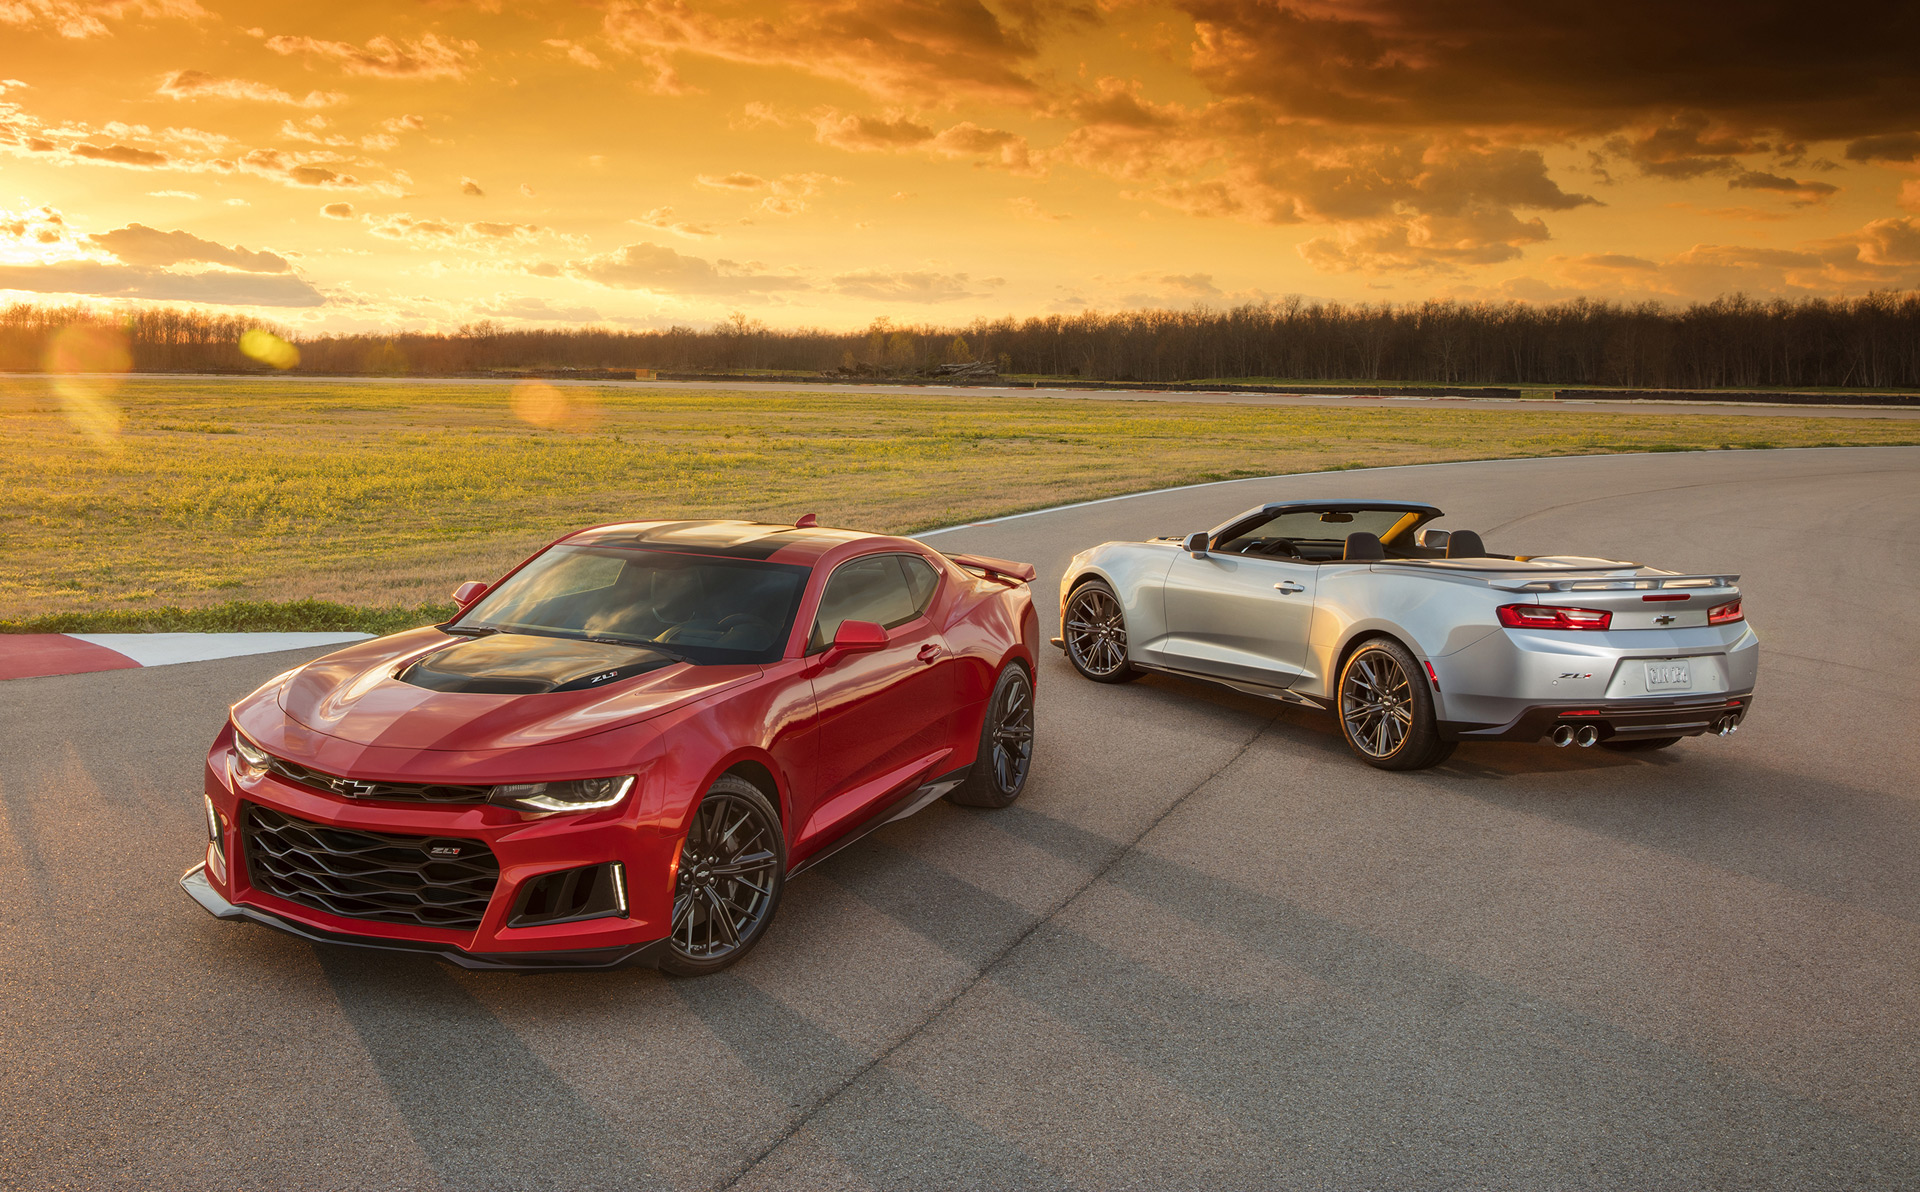 2017 Chevrolet Camaro Zl1 S Top Speed Confirmed At 198 Mph